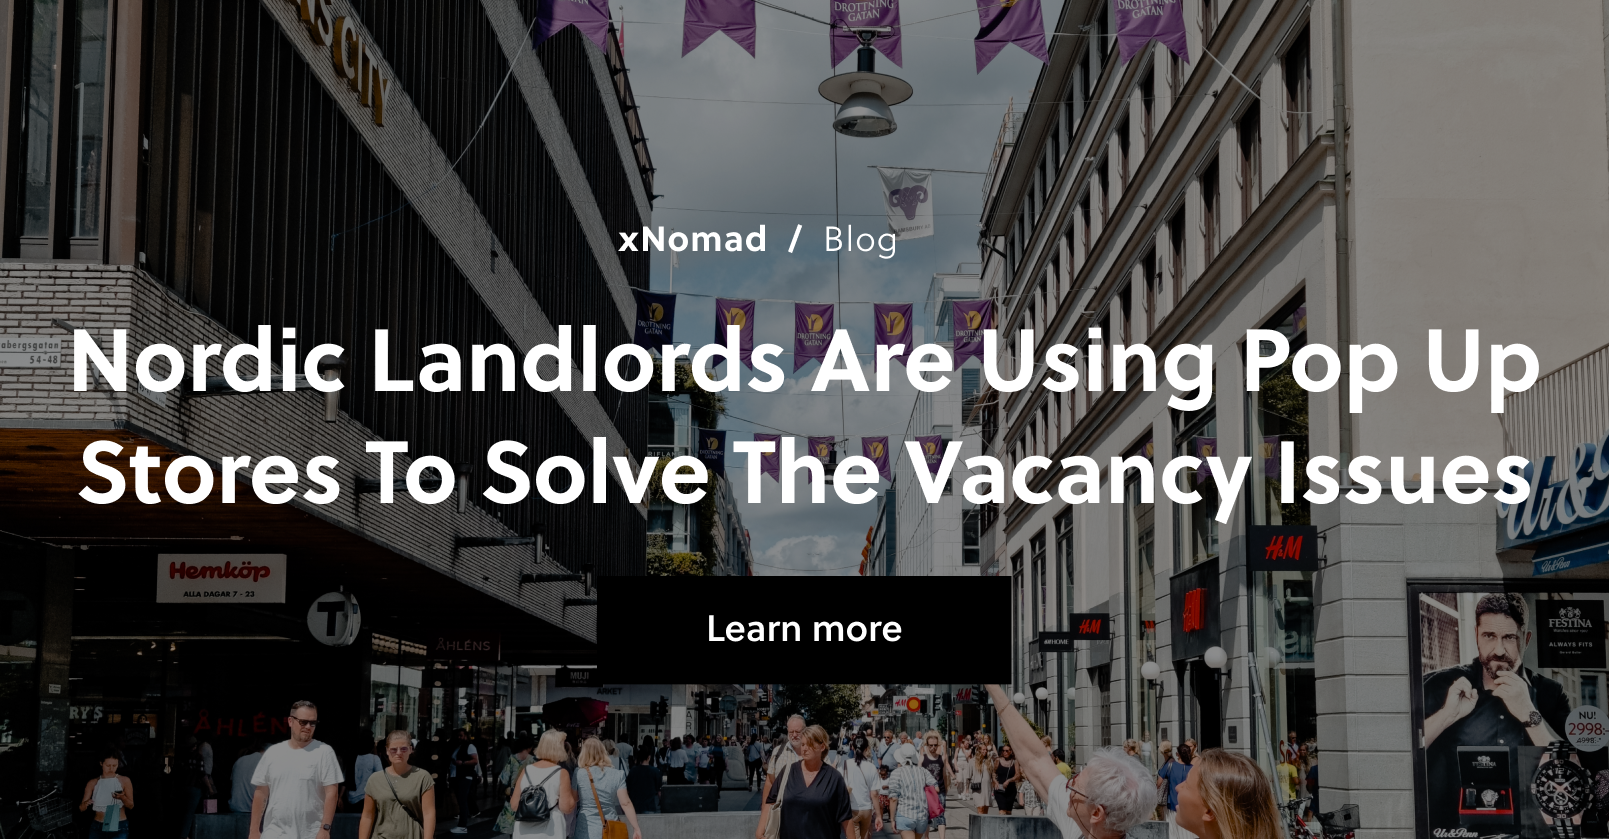 Nordic landlords are using Pop Up stores to solve the vacancy issues